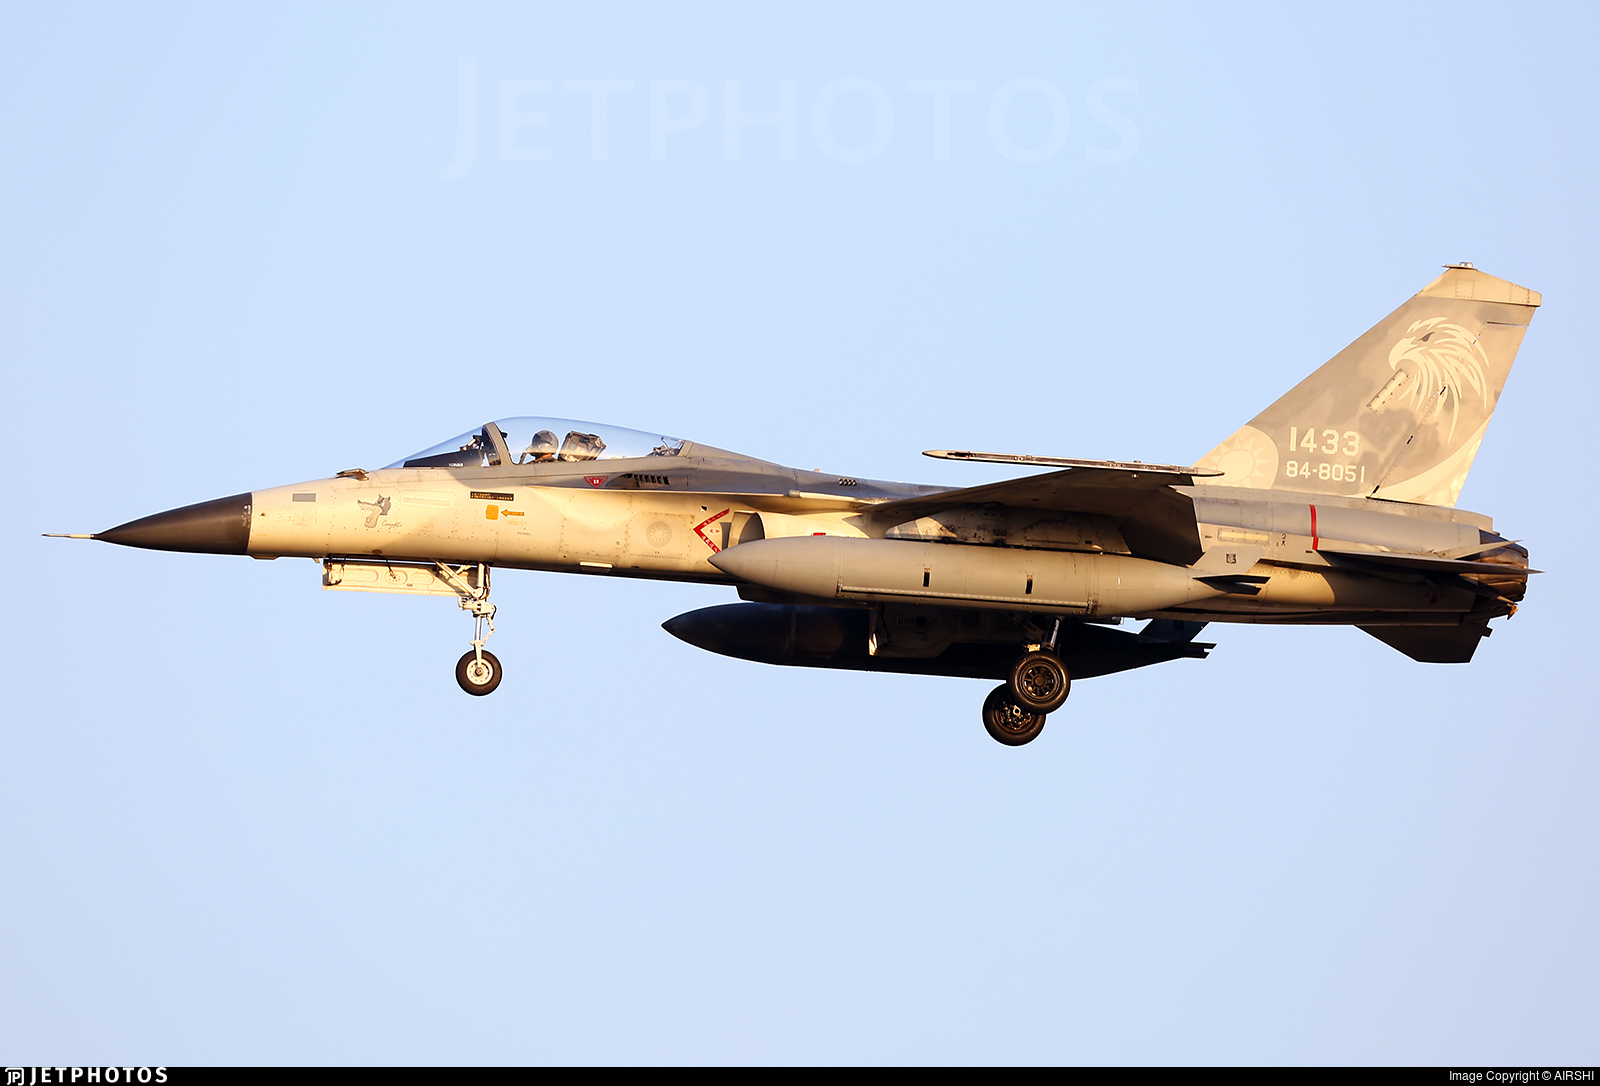 1433 - AIDC F-CK-1C Ching Kuo - Taiwan - Air Force